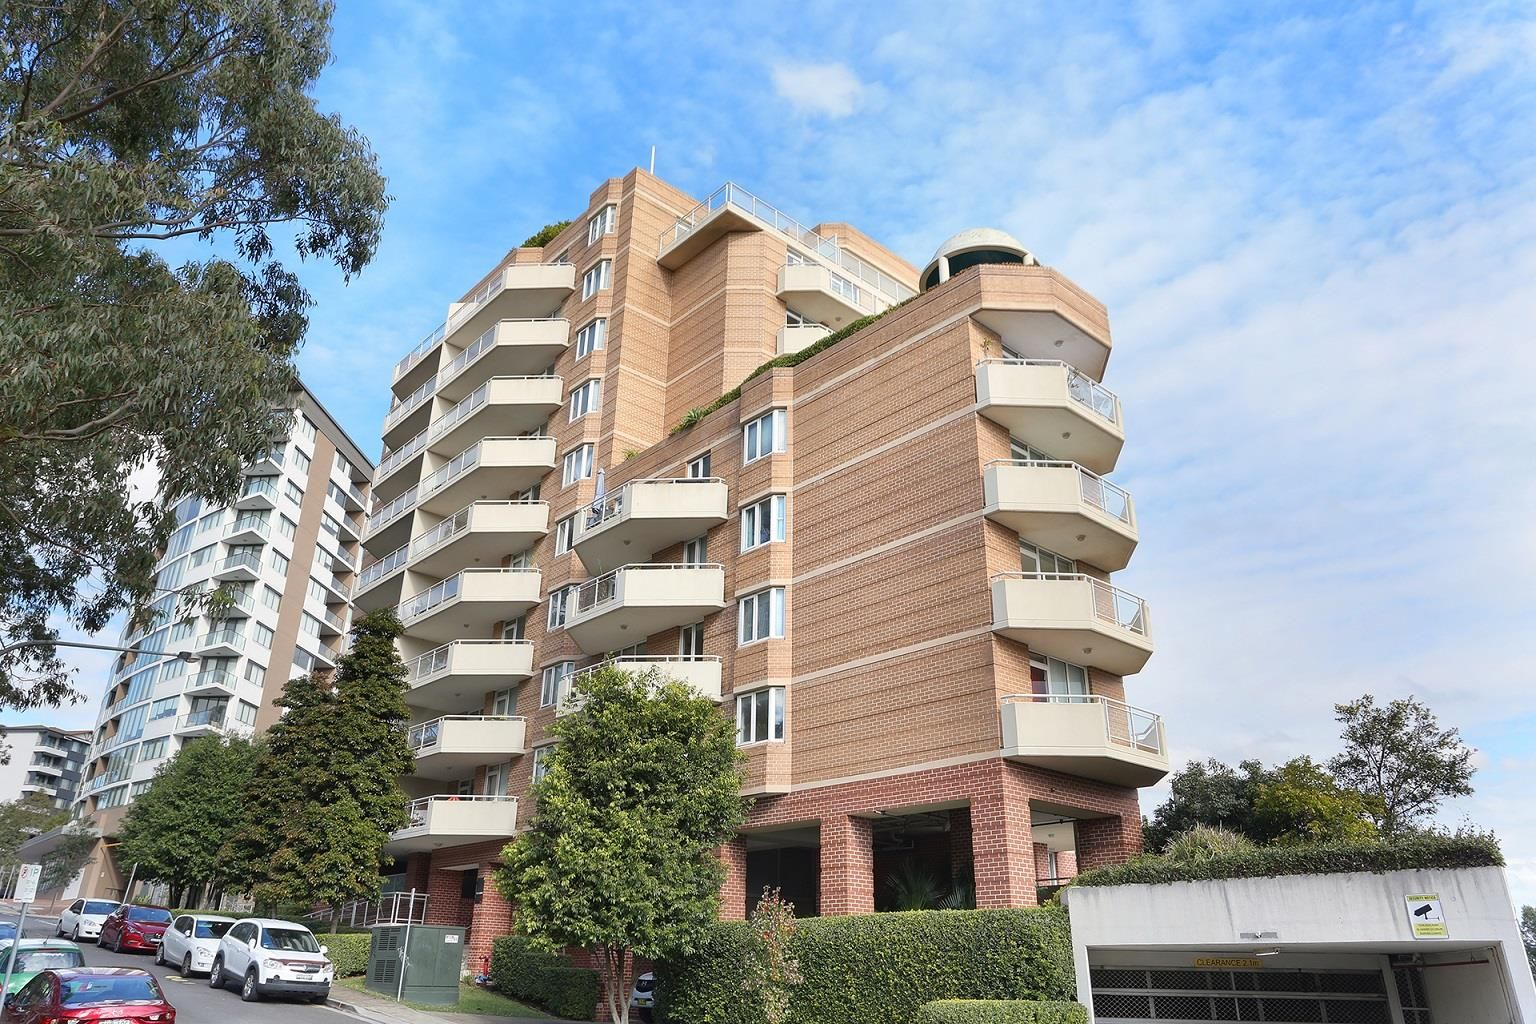 23/2 Pound Road, Hornsby NSW 2077, Image 0